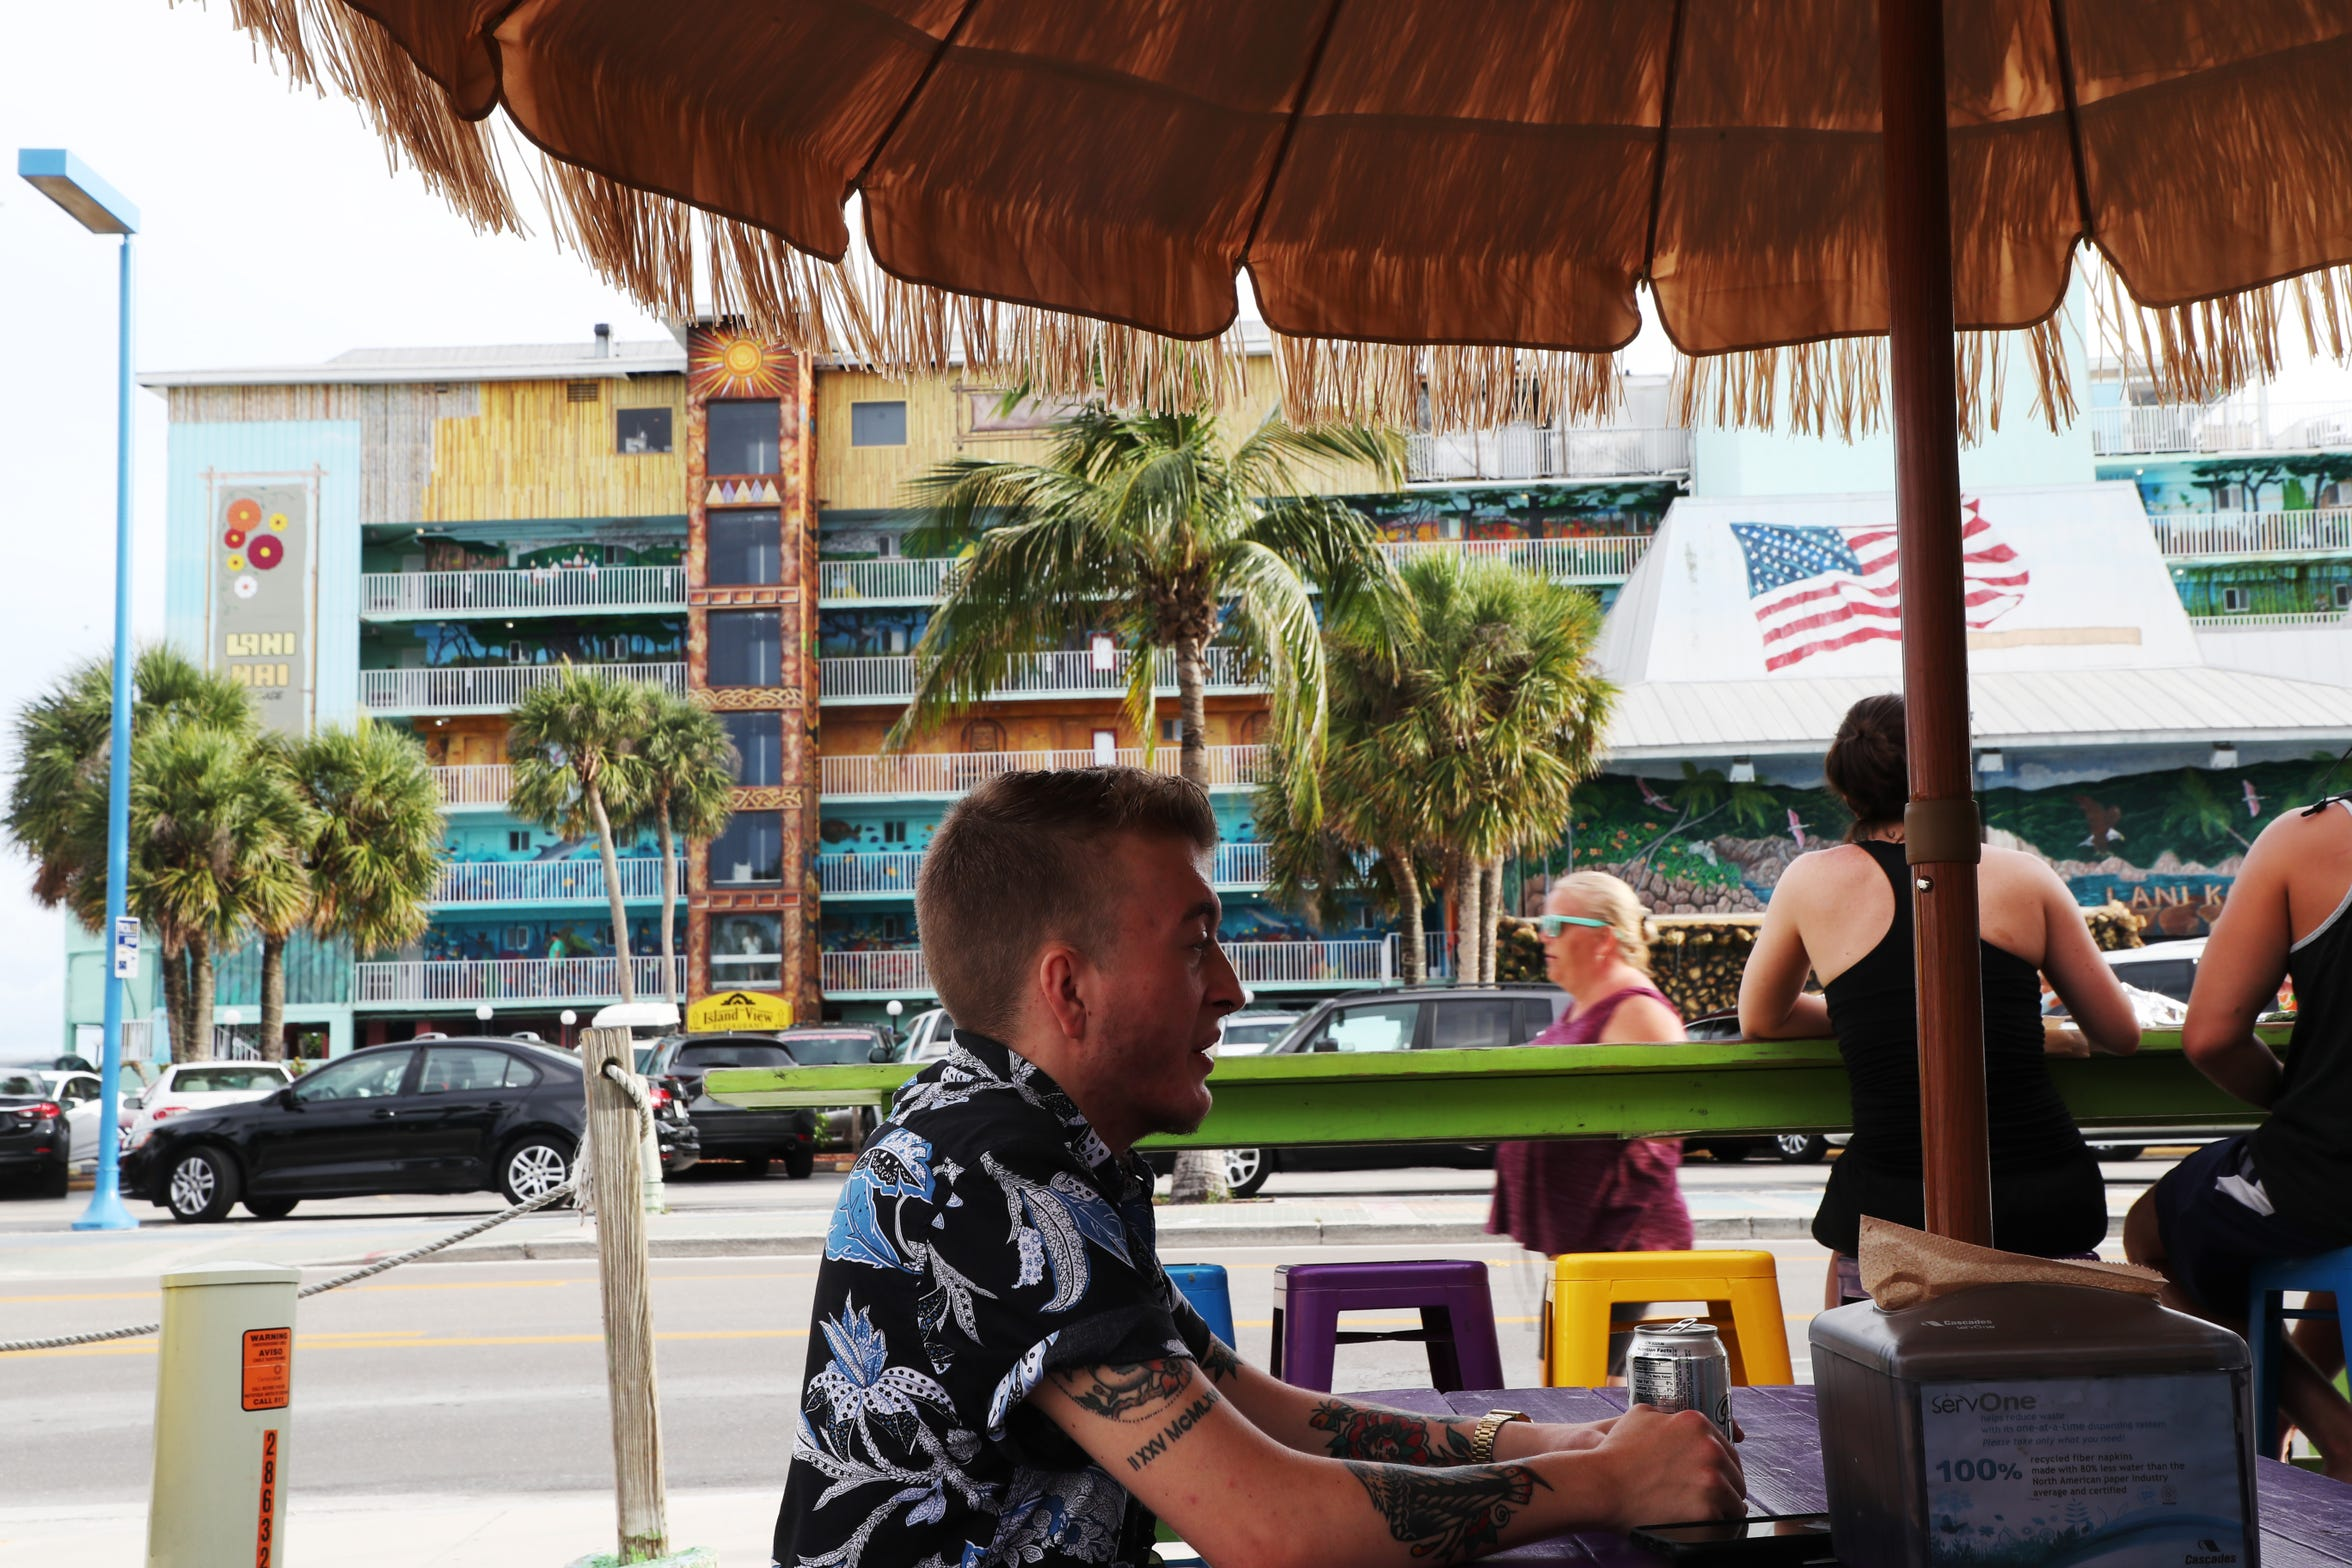 Kasey Fraize takes in a meal recently on Fort Myers Beach. Fraize struggled through middle and high school with his female identity, and at 15 he knew he wanted to transition but waited until college to avoid the hassles of parents, teachers and peers.